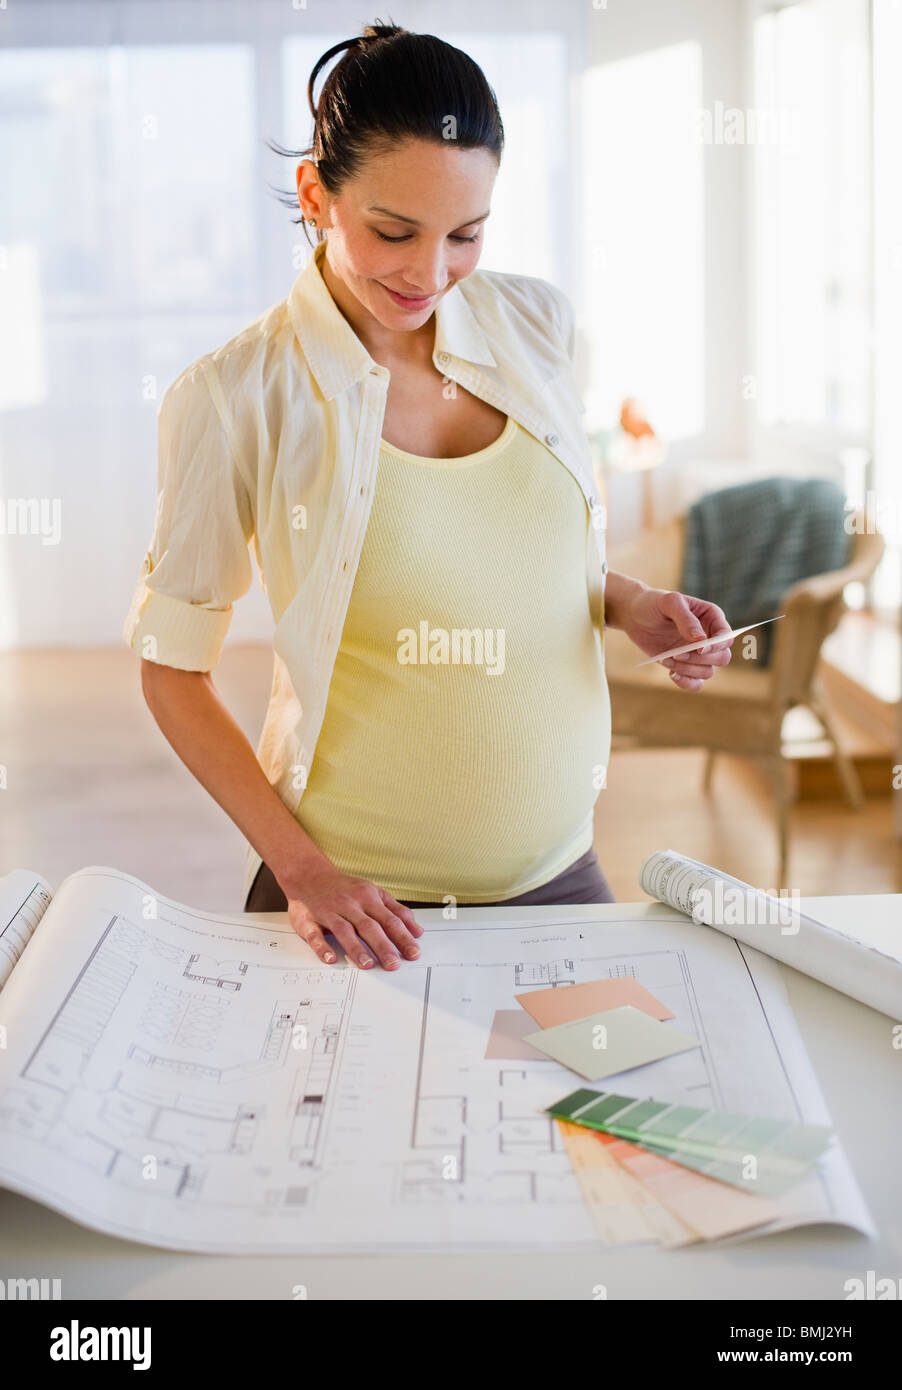 Pregnant Woman Looking t House Plans Stock Photo, oyalty Free ... - ^